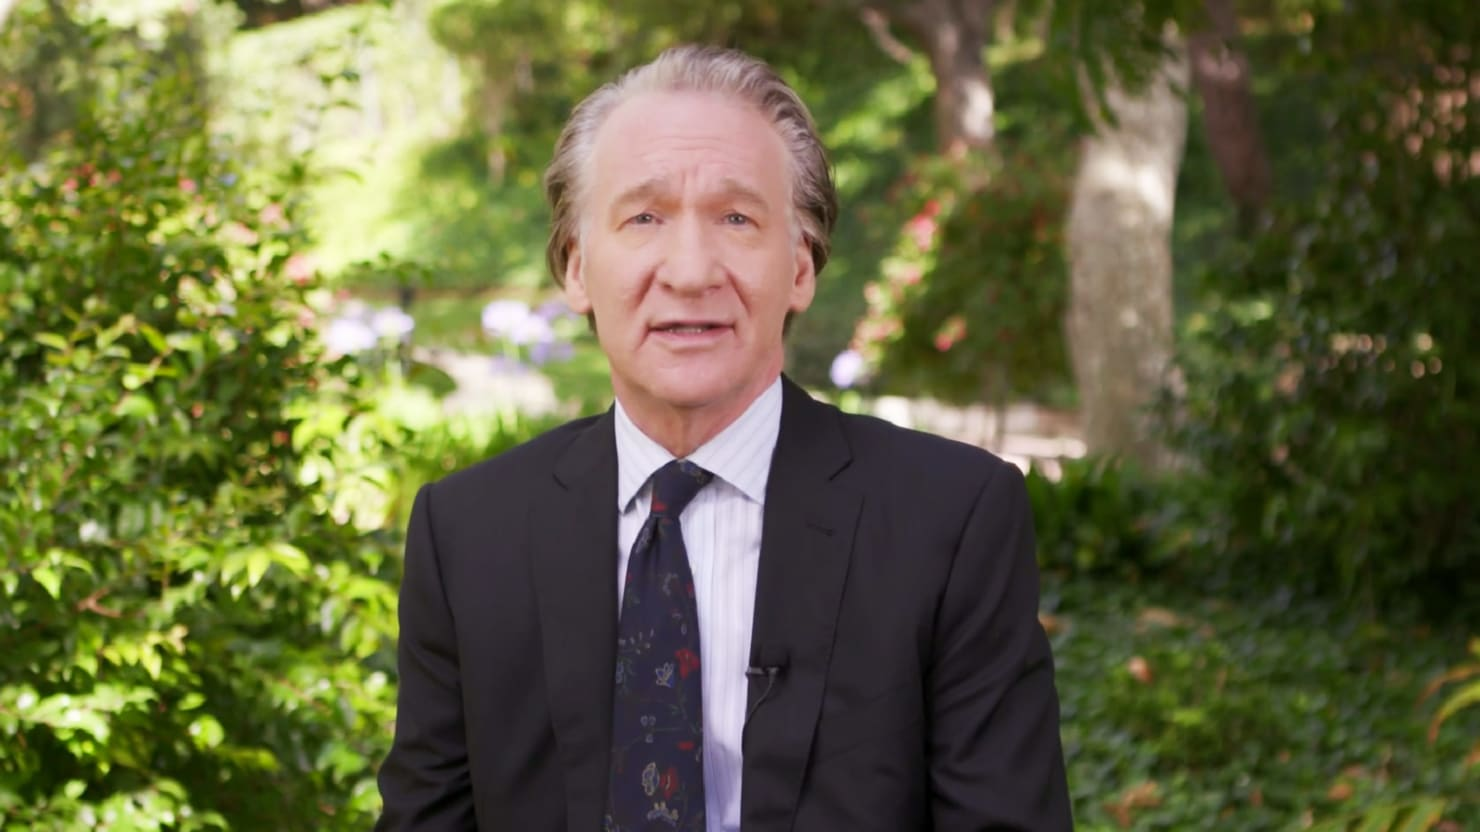 Bill Maher, Who Said the N-Word on TV, Decries 'Cancel Culture'